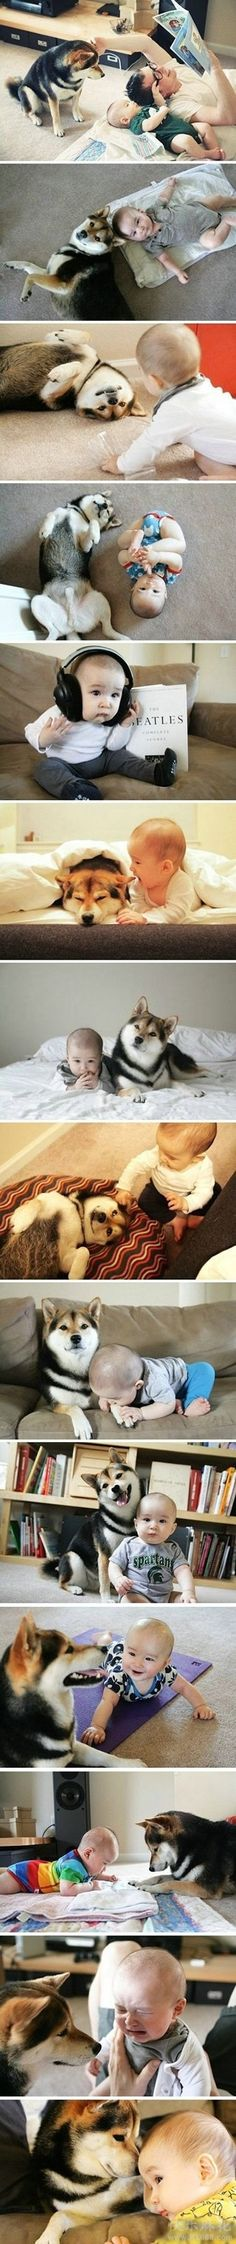 Oh my... I can't get over how adorable this is!